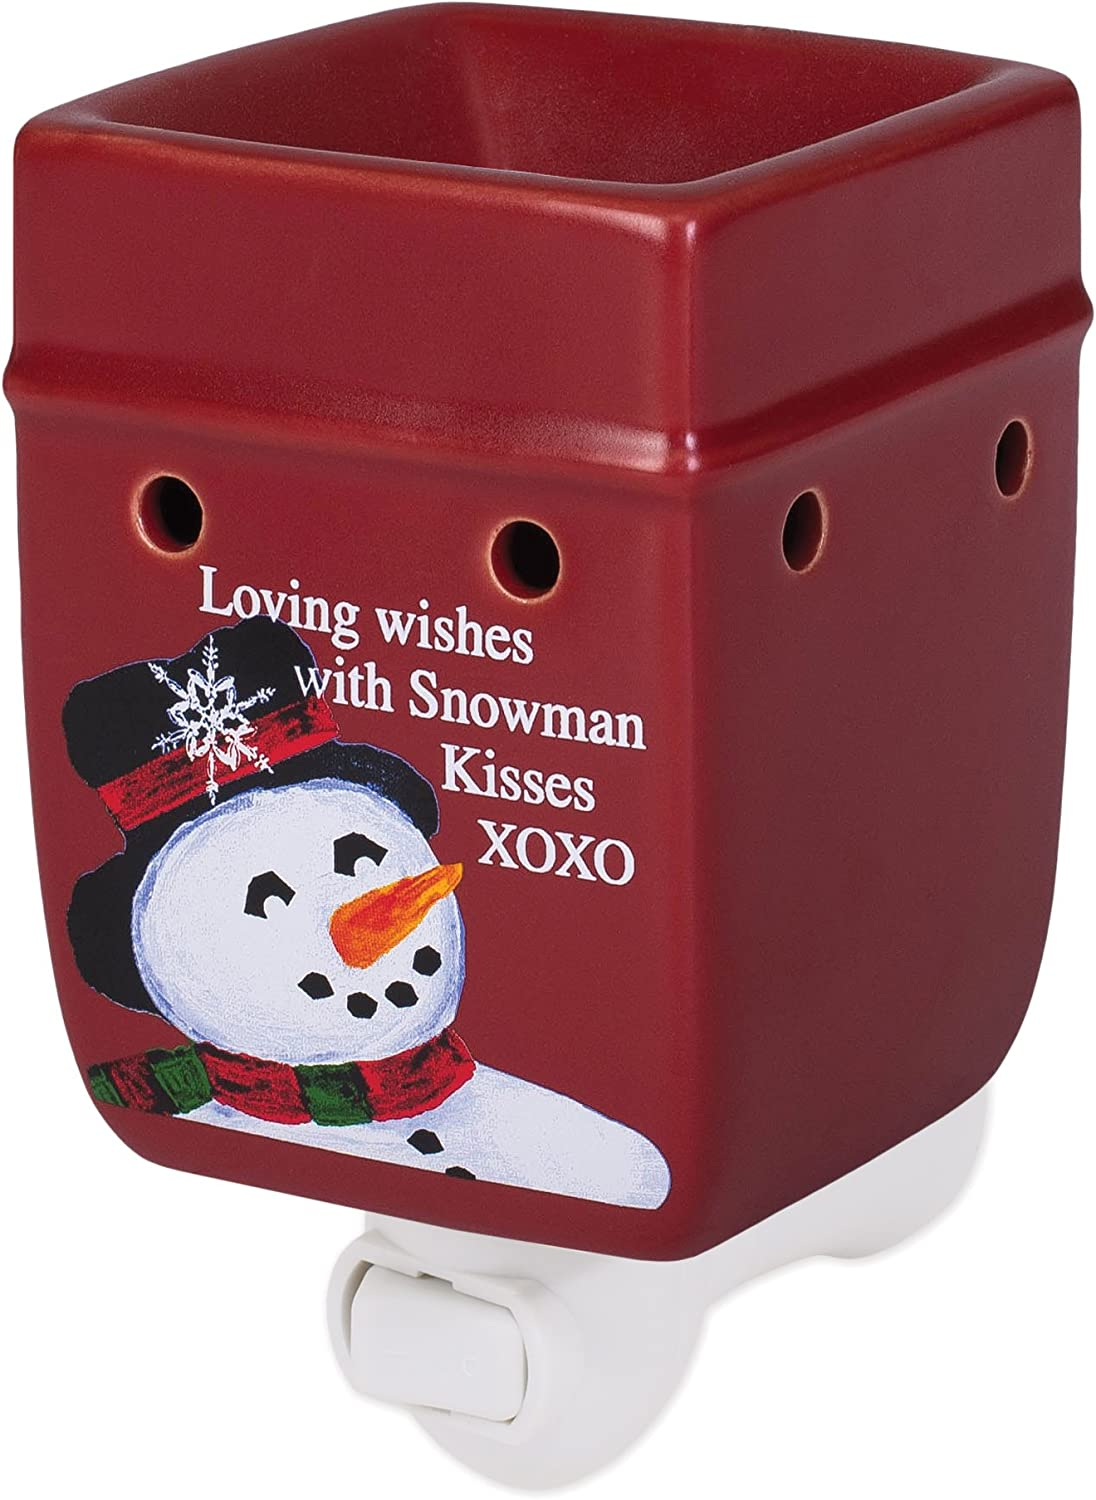 Elanze Designs Classic Snowman Winter Wonders Red Christmas Ceramic Stone Holiday Plug-in Warmer